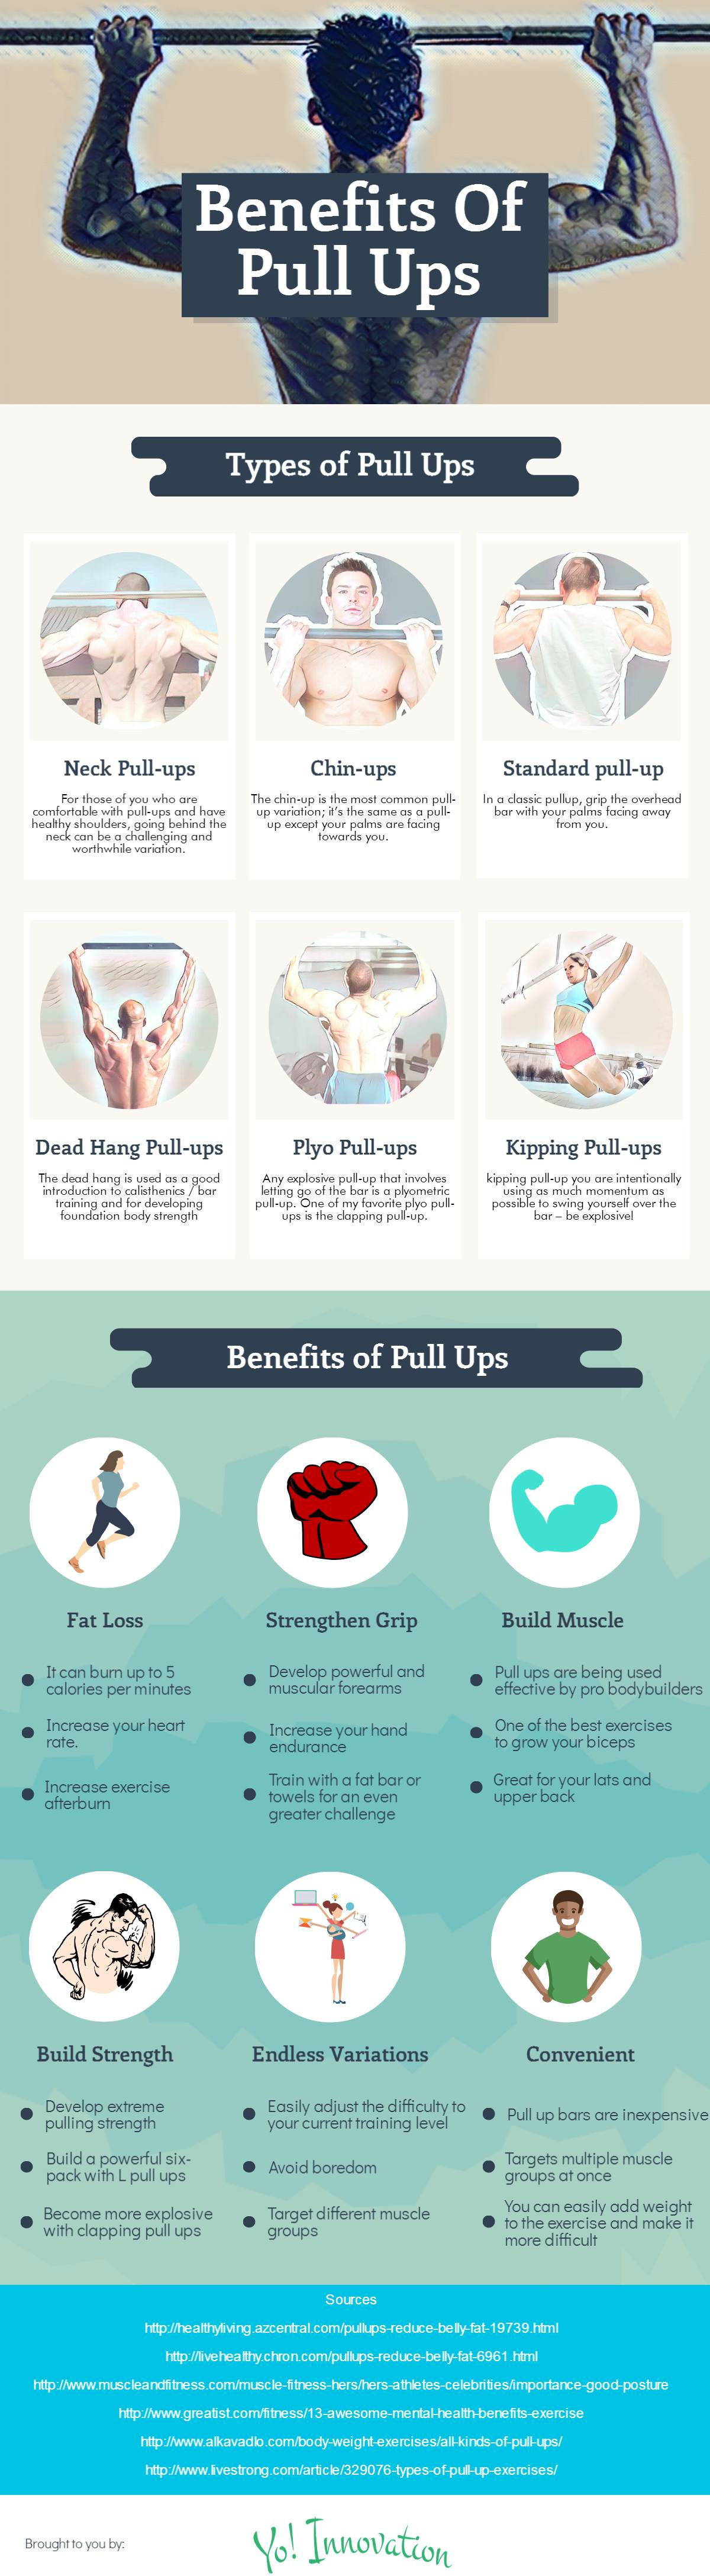 The benefits of pull ups infographic